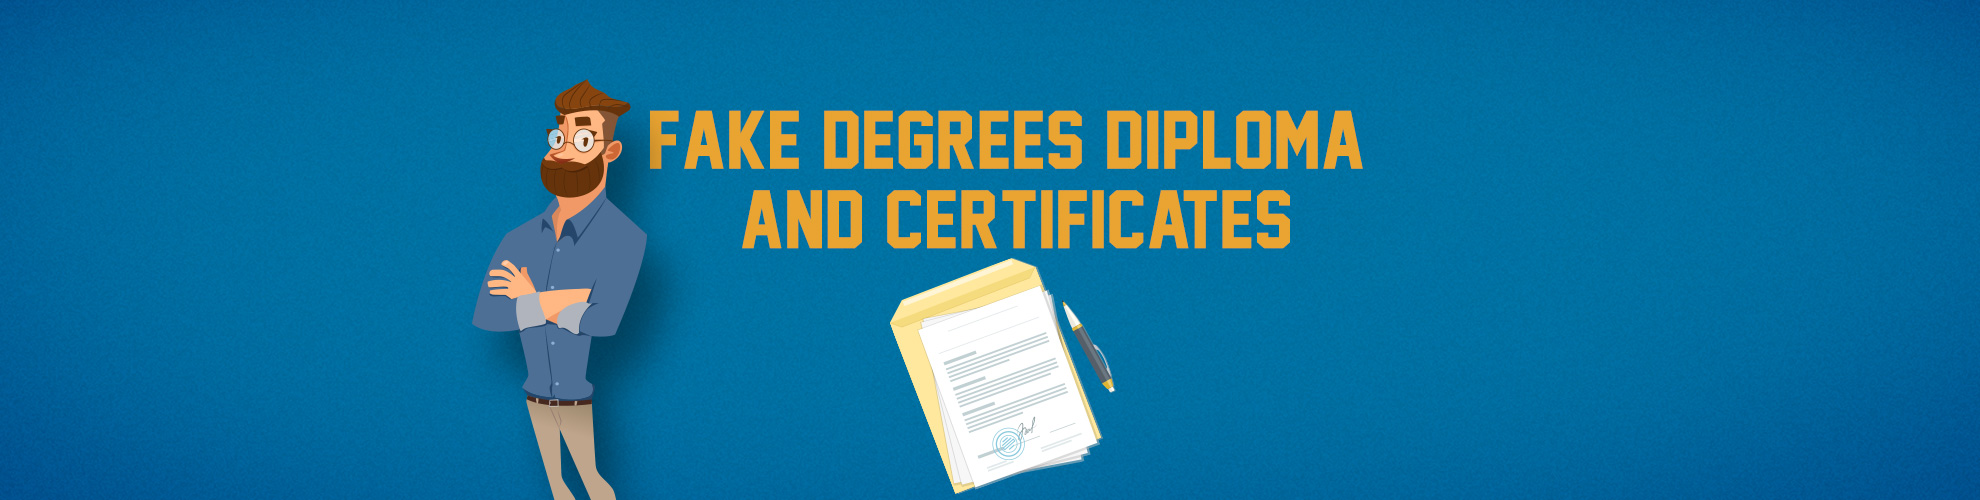 Fake Degrees Diploma and Certificates